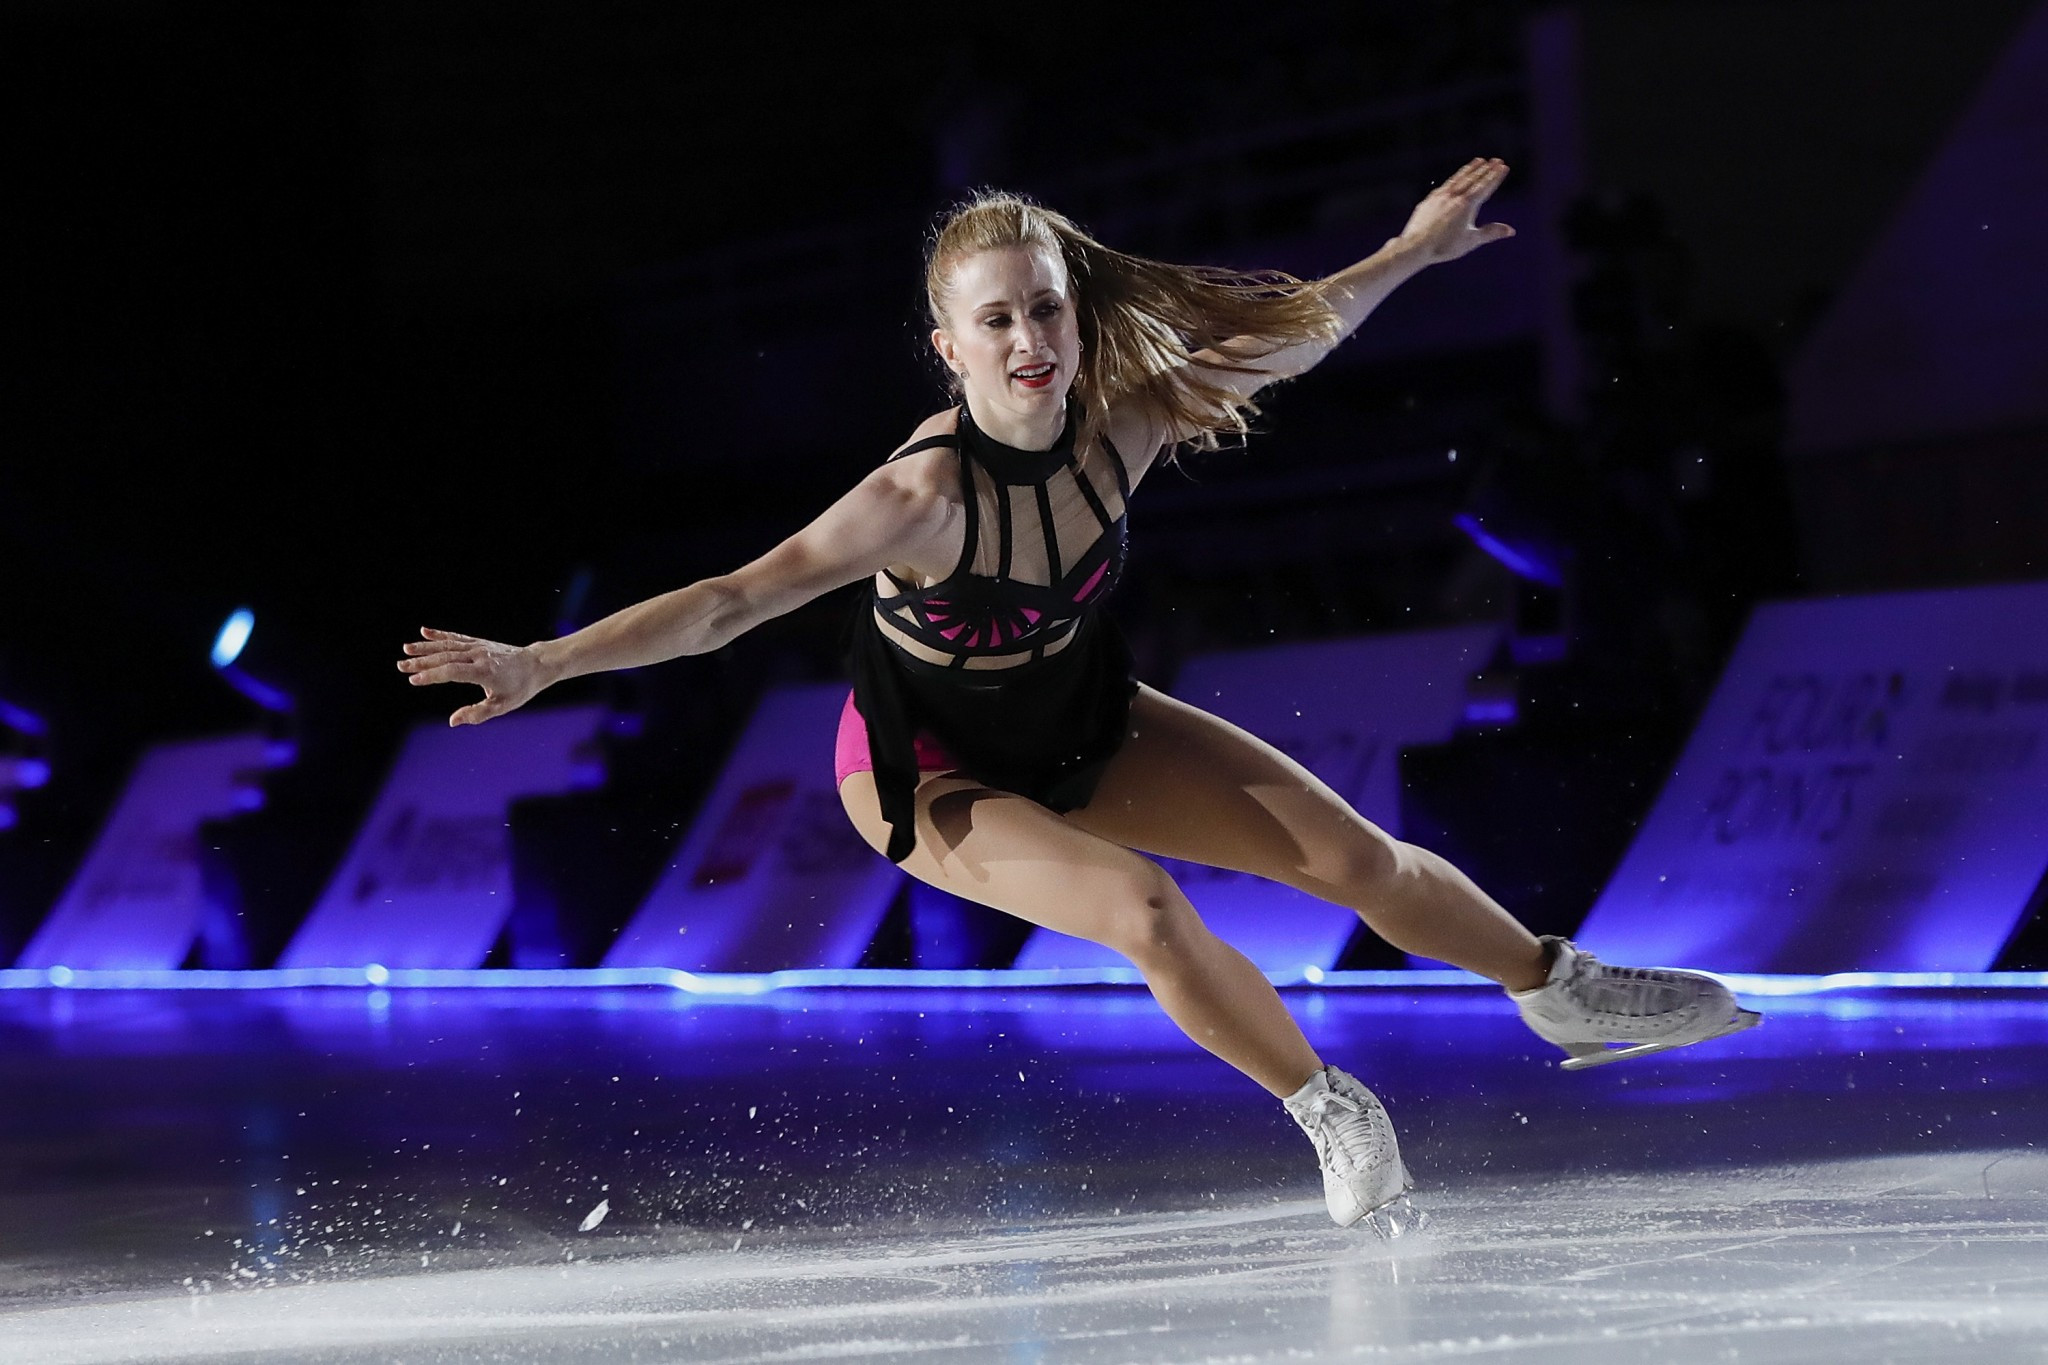 Olympic medallist Rochette inducted into Skate Canada Hall of Fame